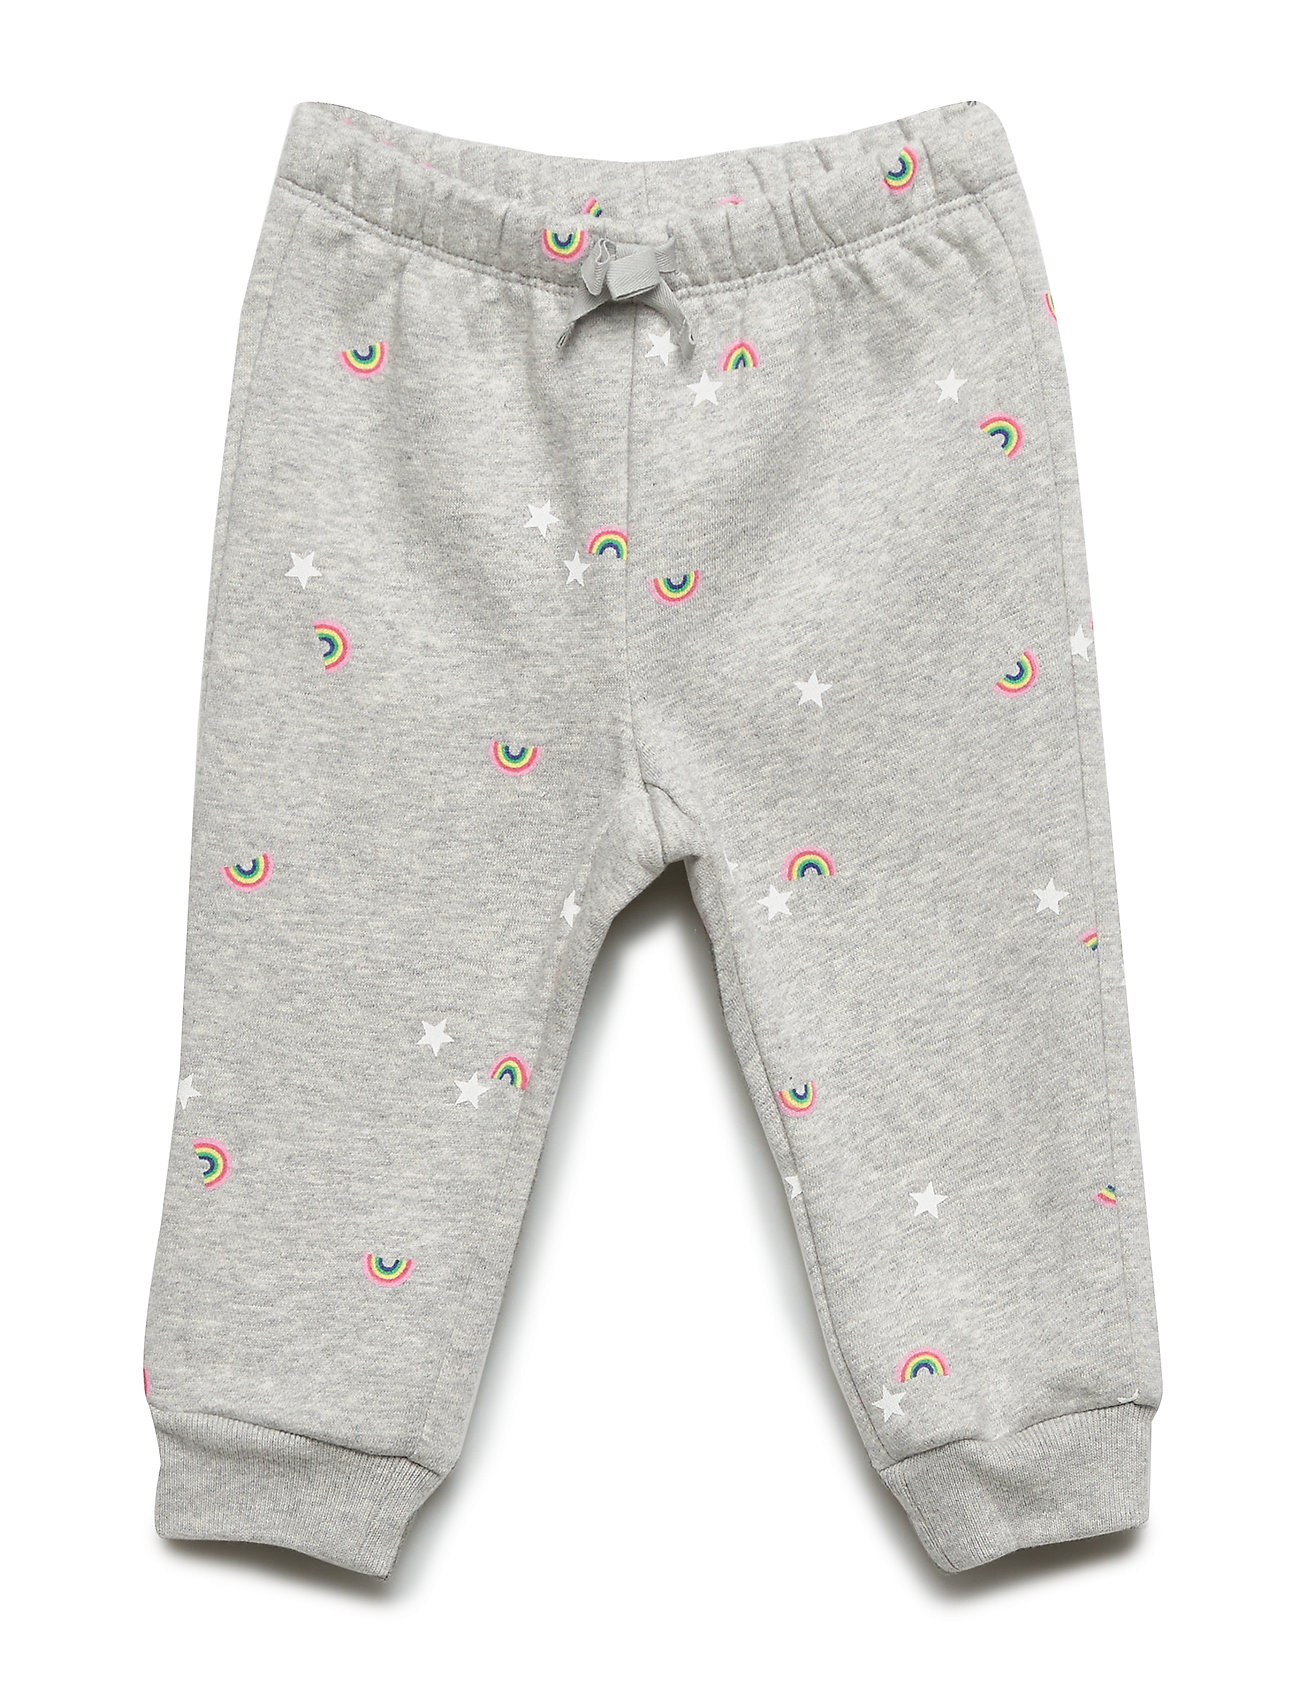 Image of Baby Rainbow Pull-On Pants Bukser Grå GAP (3230588145)